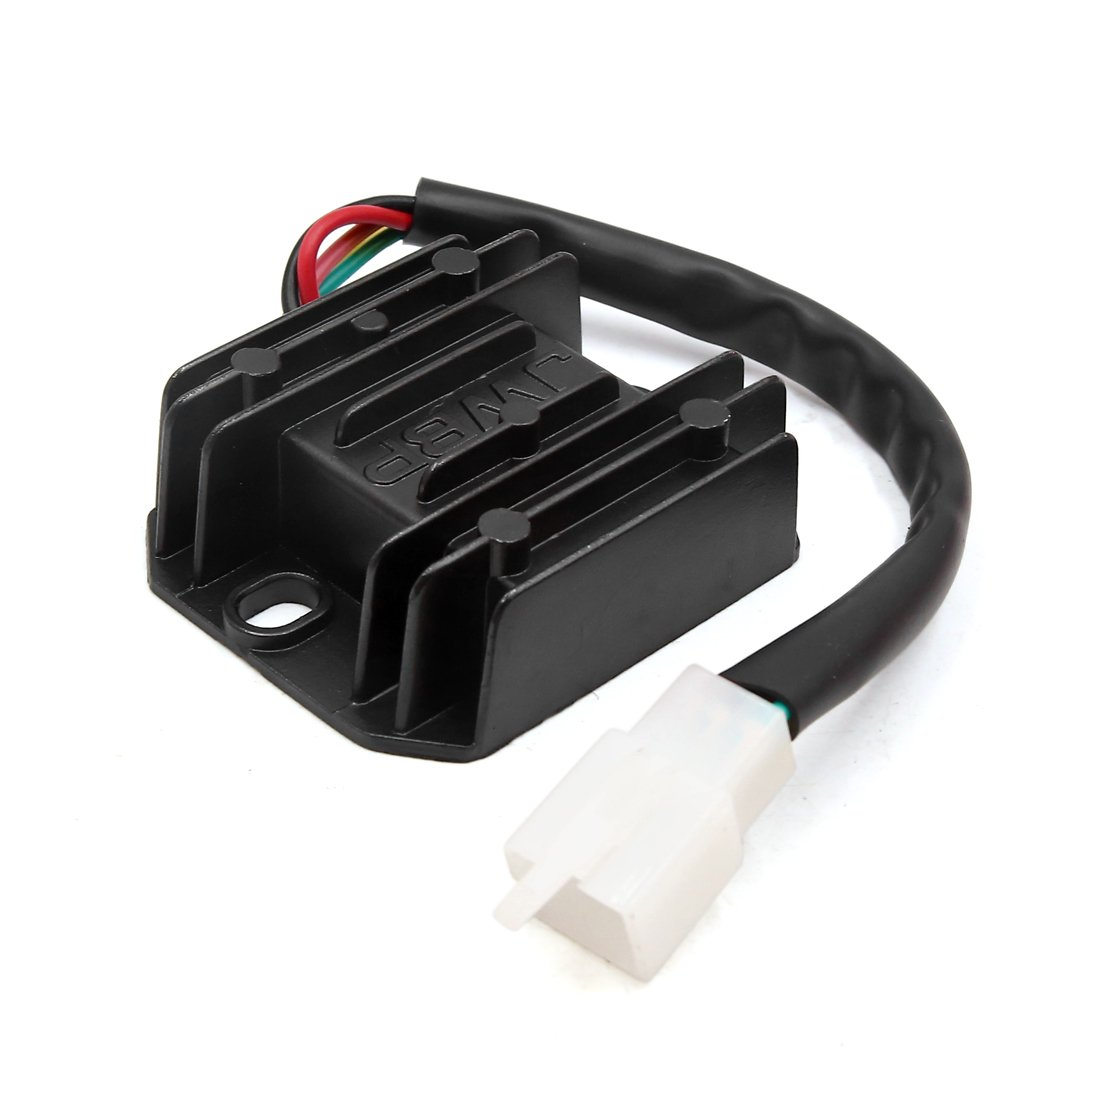 uxcell 5 Terminals Black Metal Motorcycle Voltage Wiring Regulator Rectifier for ZJ-125